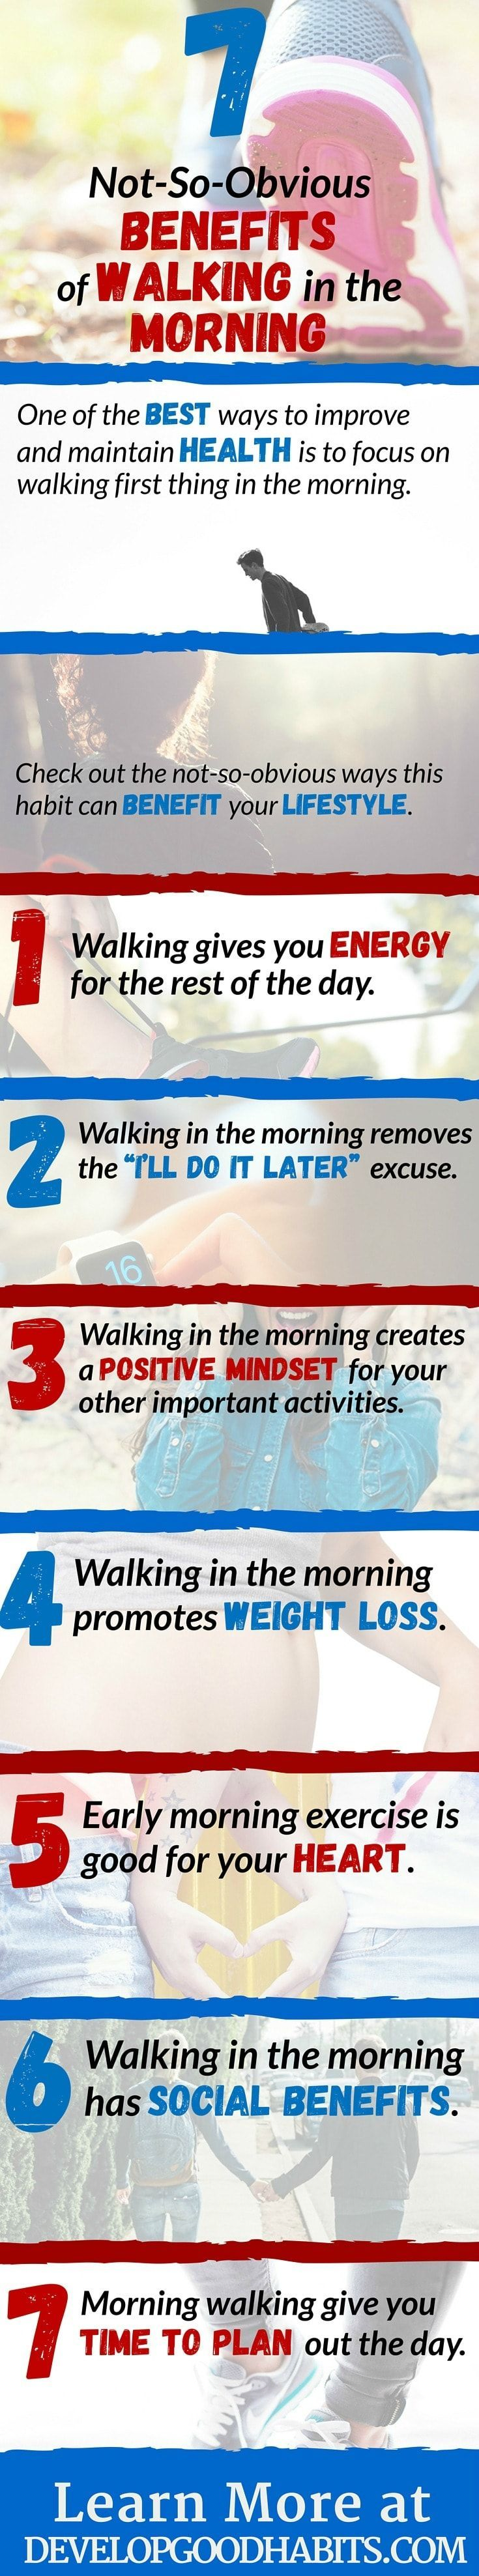 benefits of morning exercise The benefits of an adhd morning exercise routine before we get to how to get started, let's talk first about what everyone really wants to know: the benefits we .